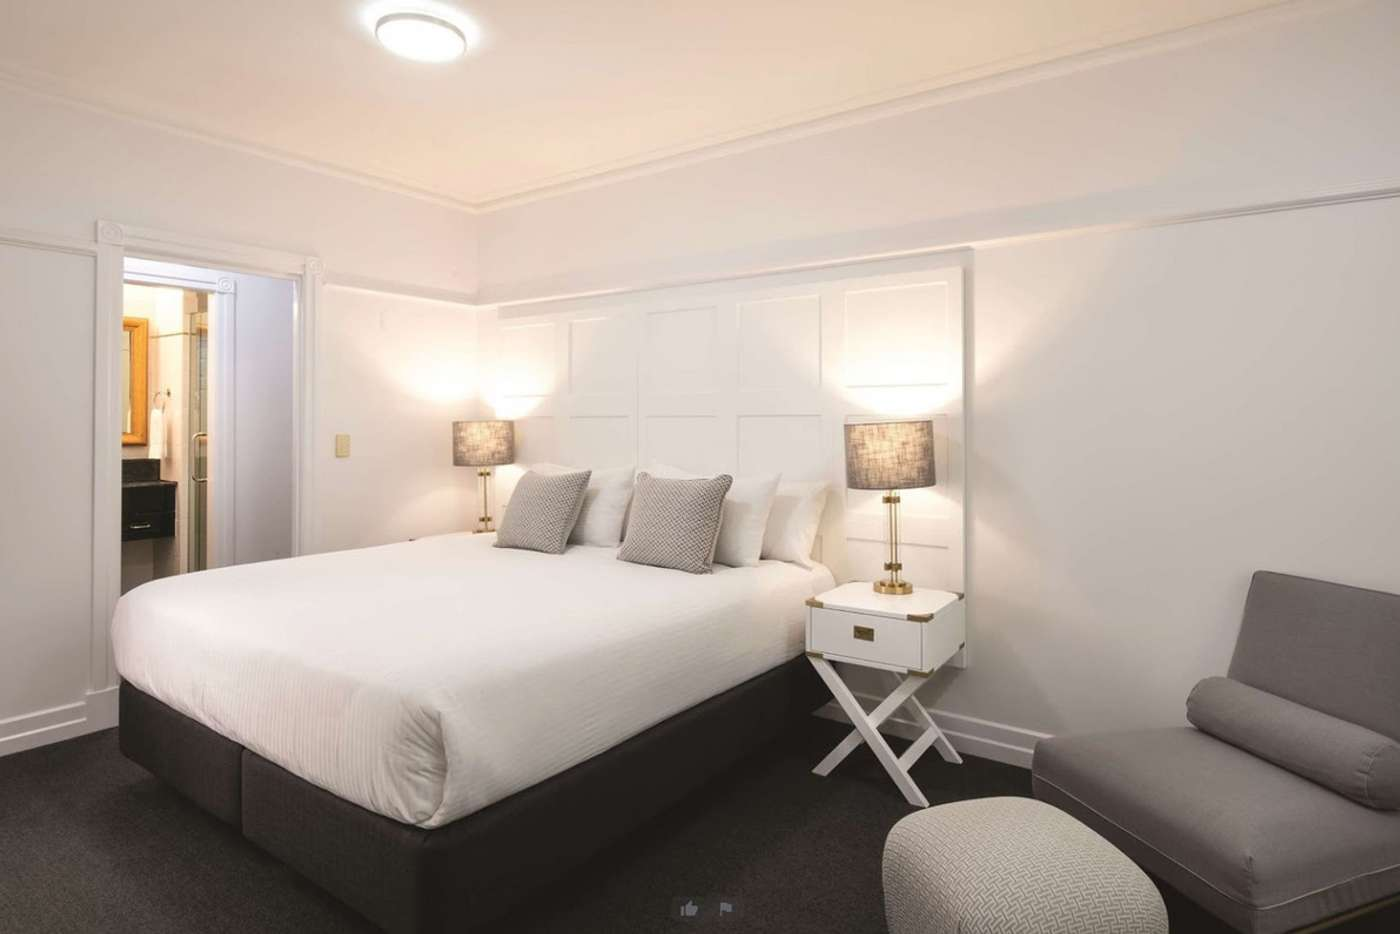 Main view of Homely apartment listing, 2010/255 Ann Street, Brisbane City QLD 4000